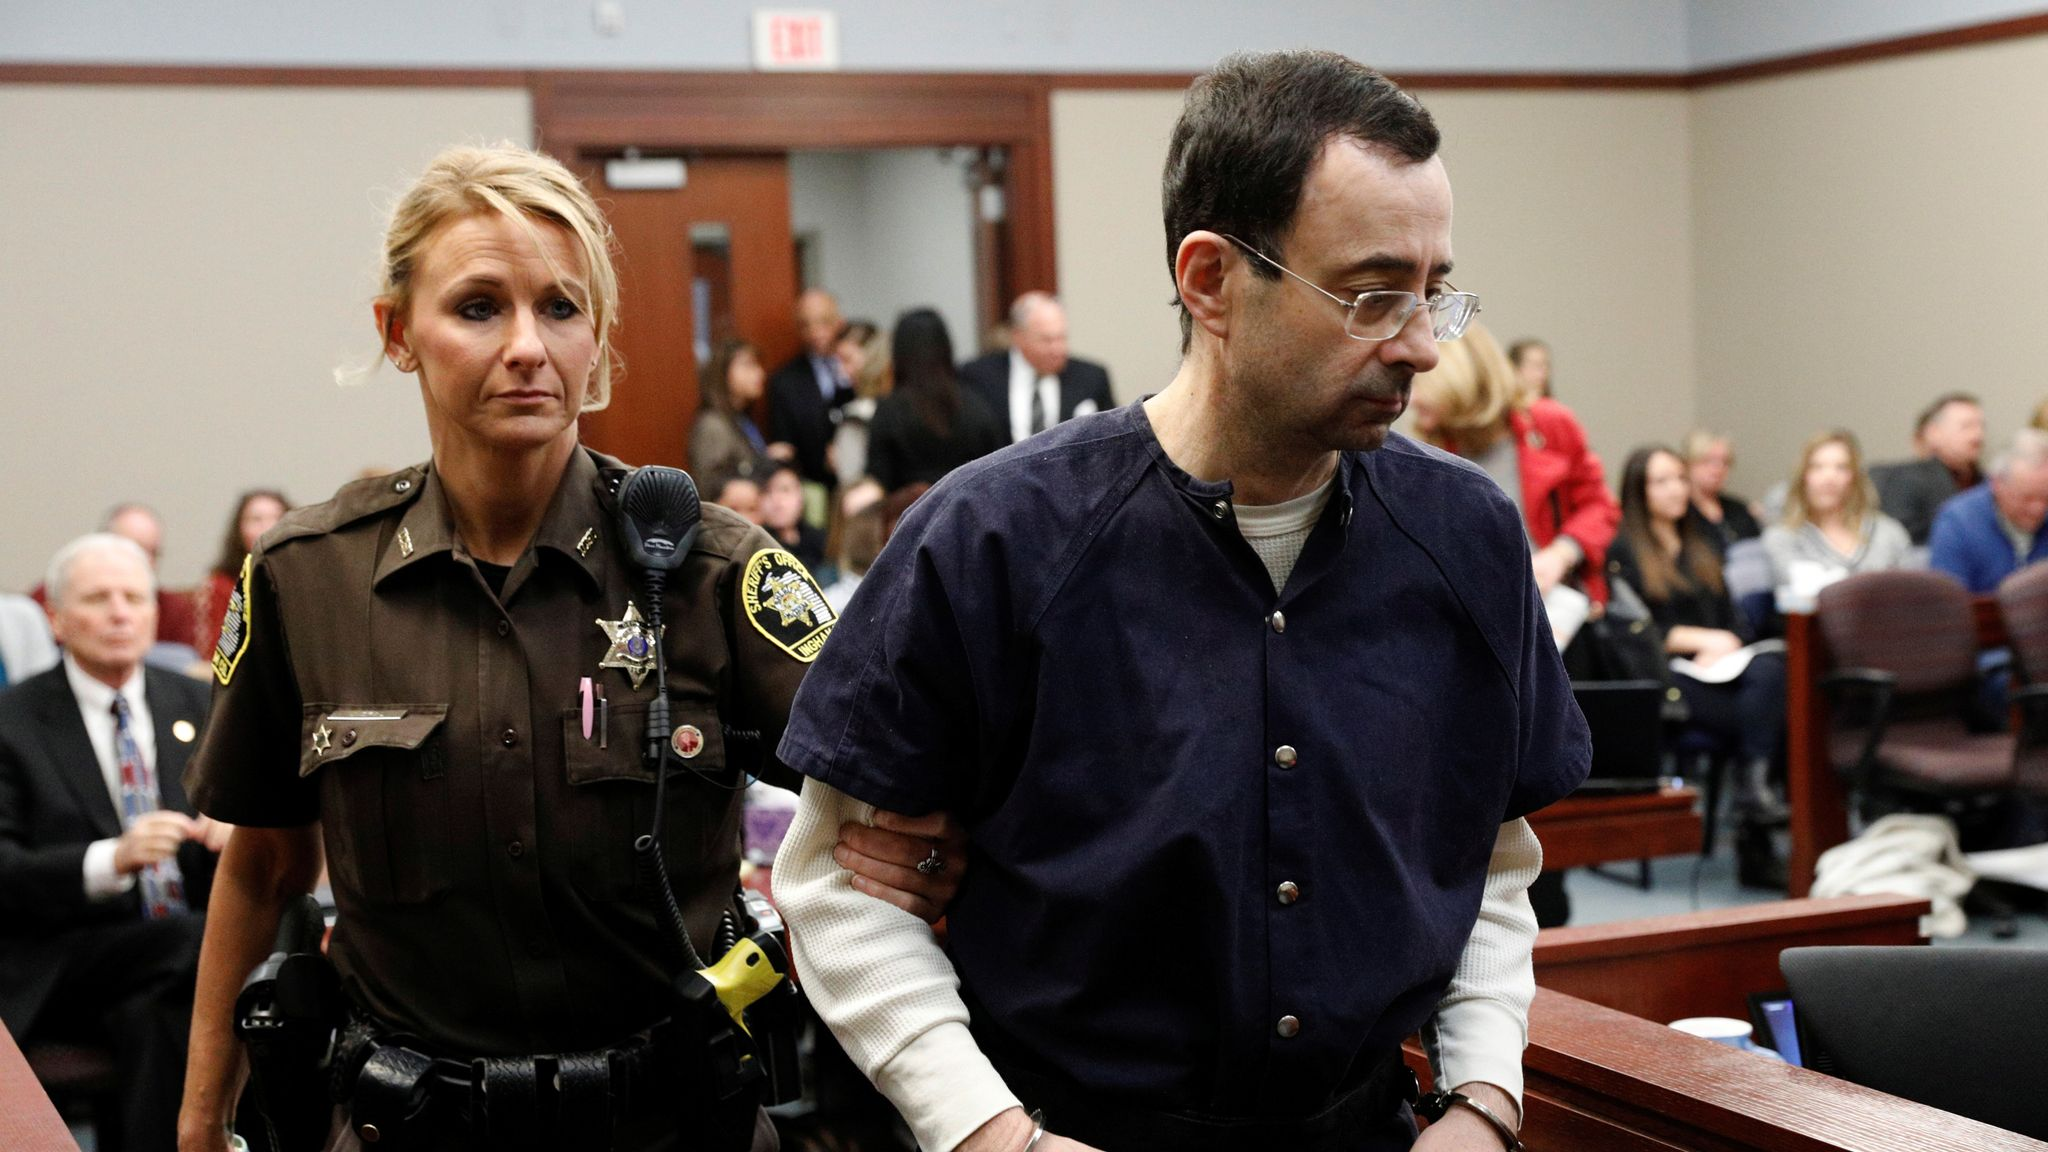 What did Larry Nassar do